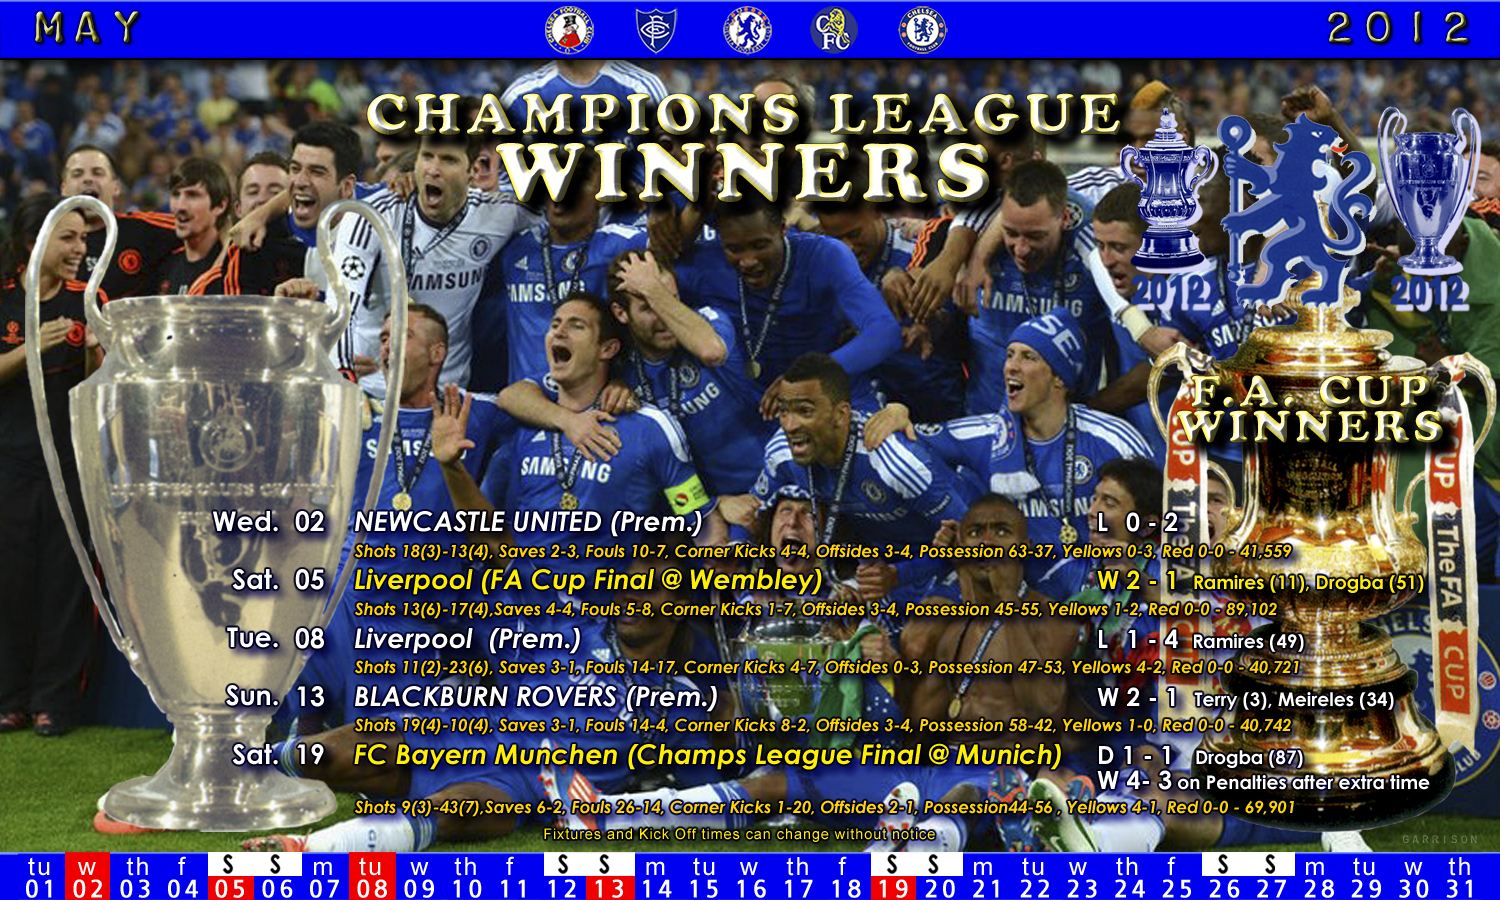 Chelsea May Fixtures 2012 | Flickr - Photo Sharing!